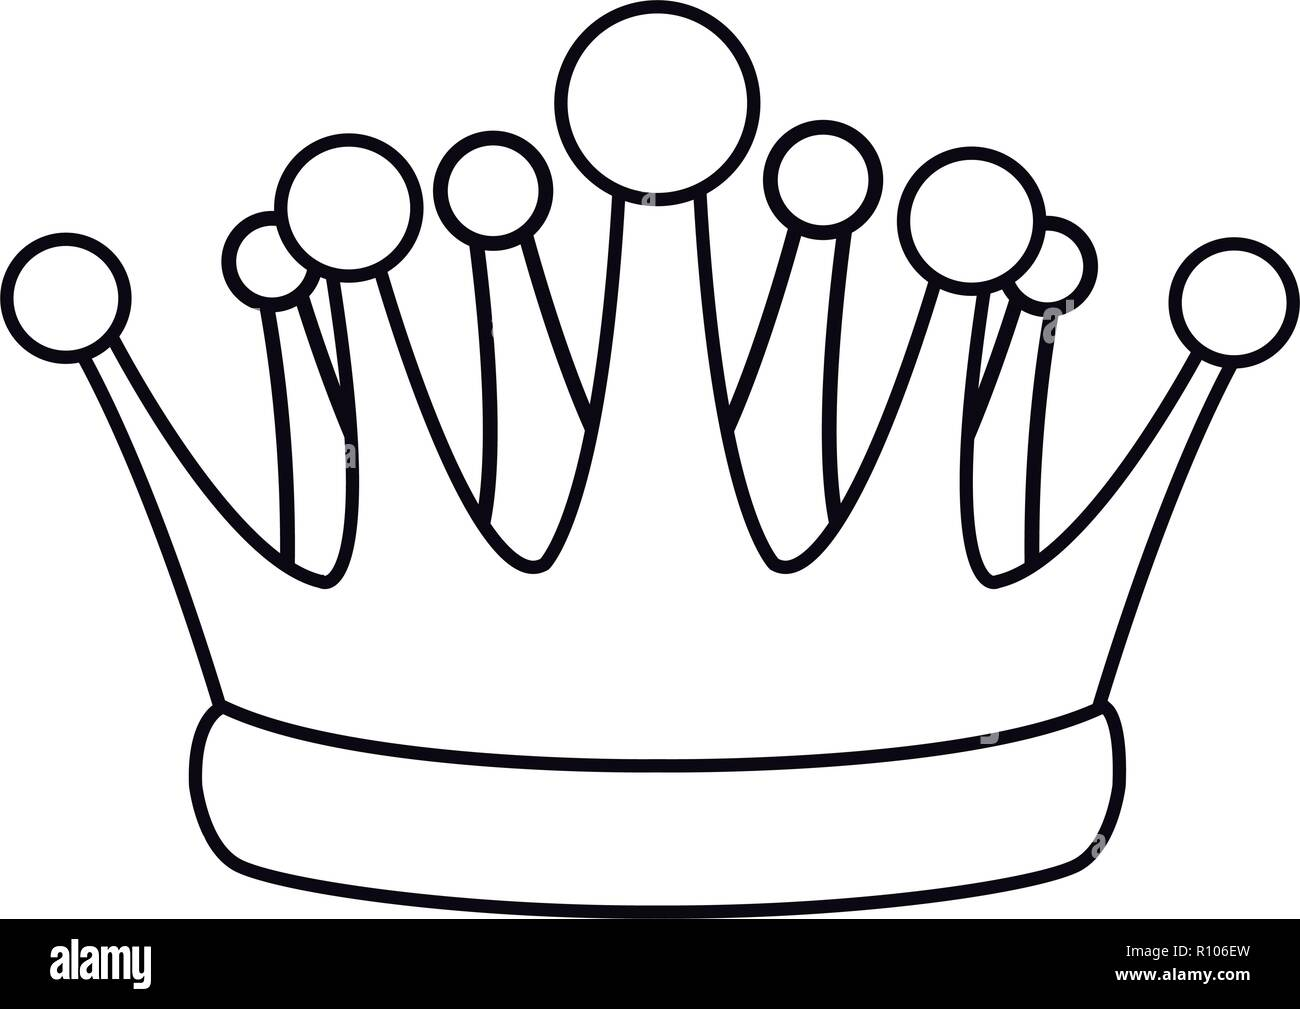 Pop Art Crown Cartoon In Black And White Stock Vector Image Art Alamy 1024 x 912 jpeg 229 кб. https www alamy com pop art crown cartoon in black and white image224354561 html